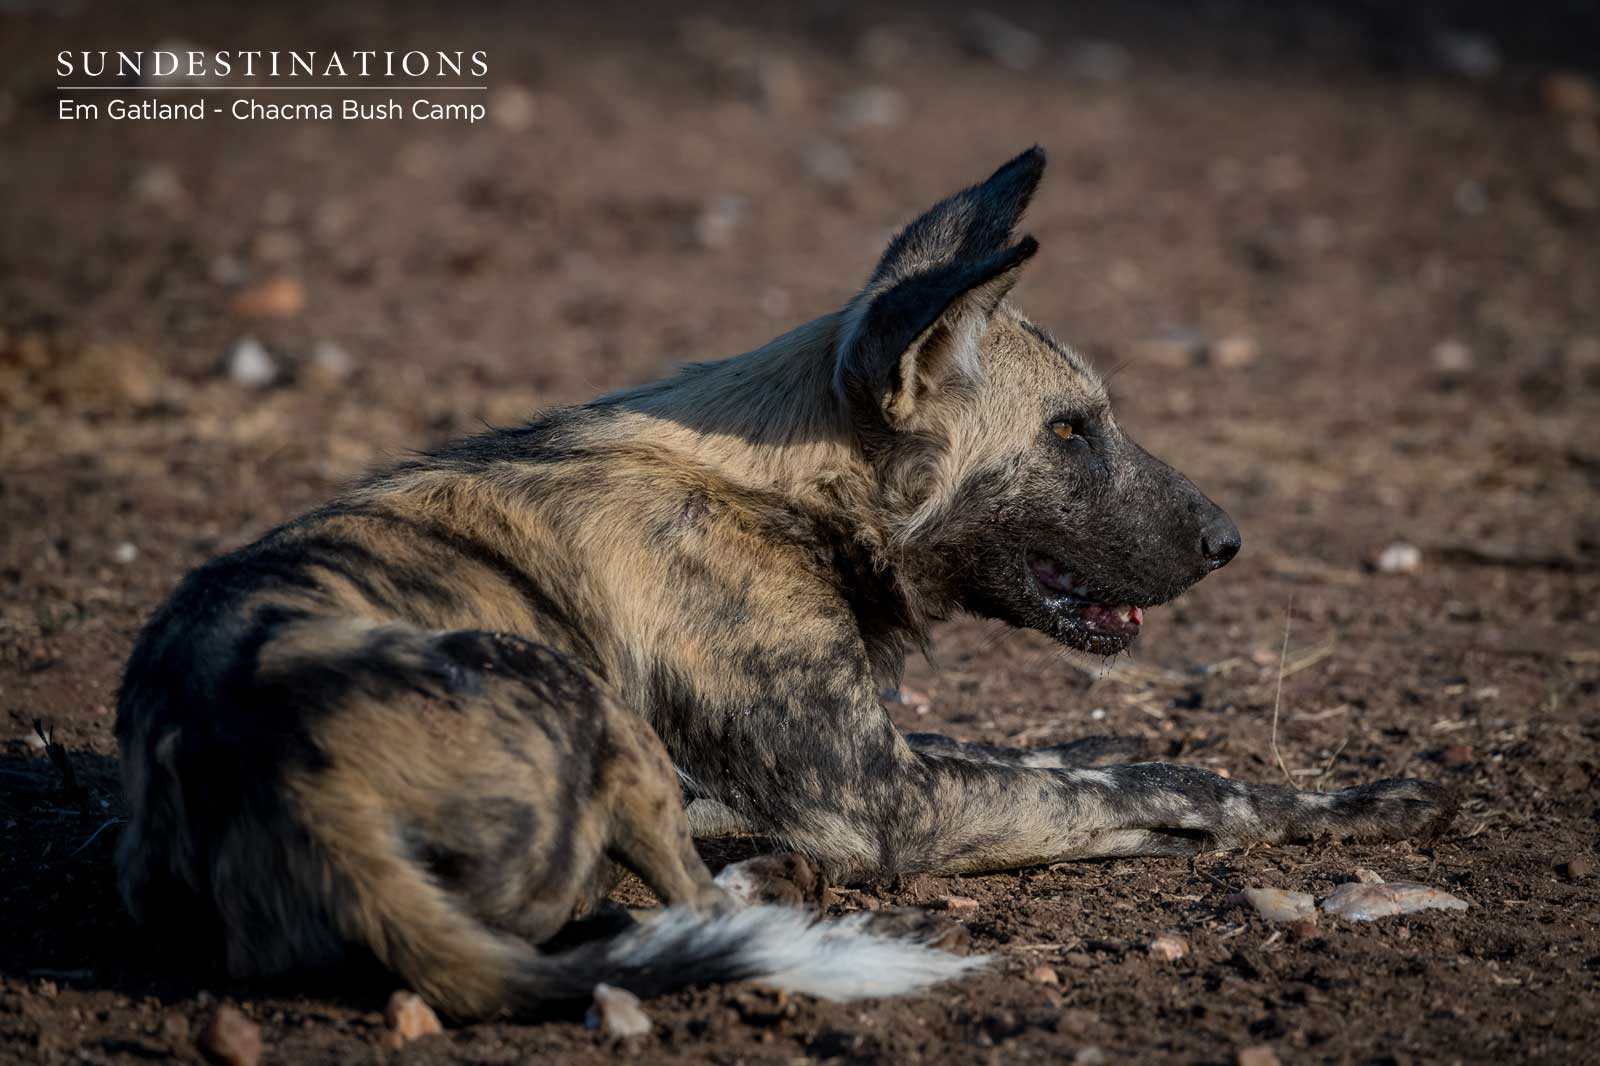 Wild Dog at Chacma Bush Camp